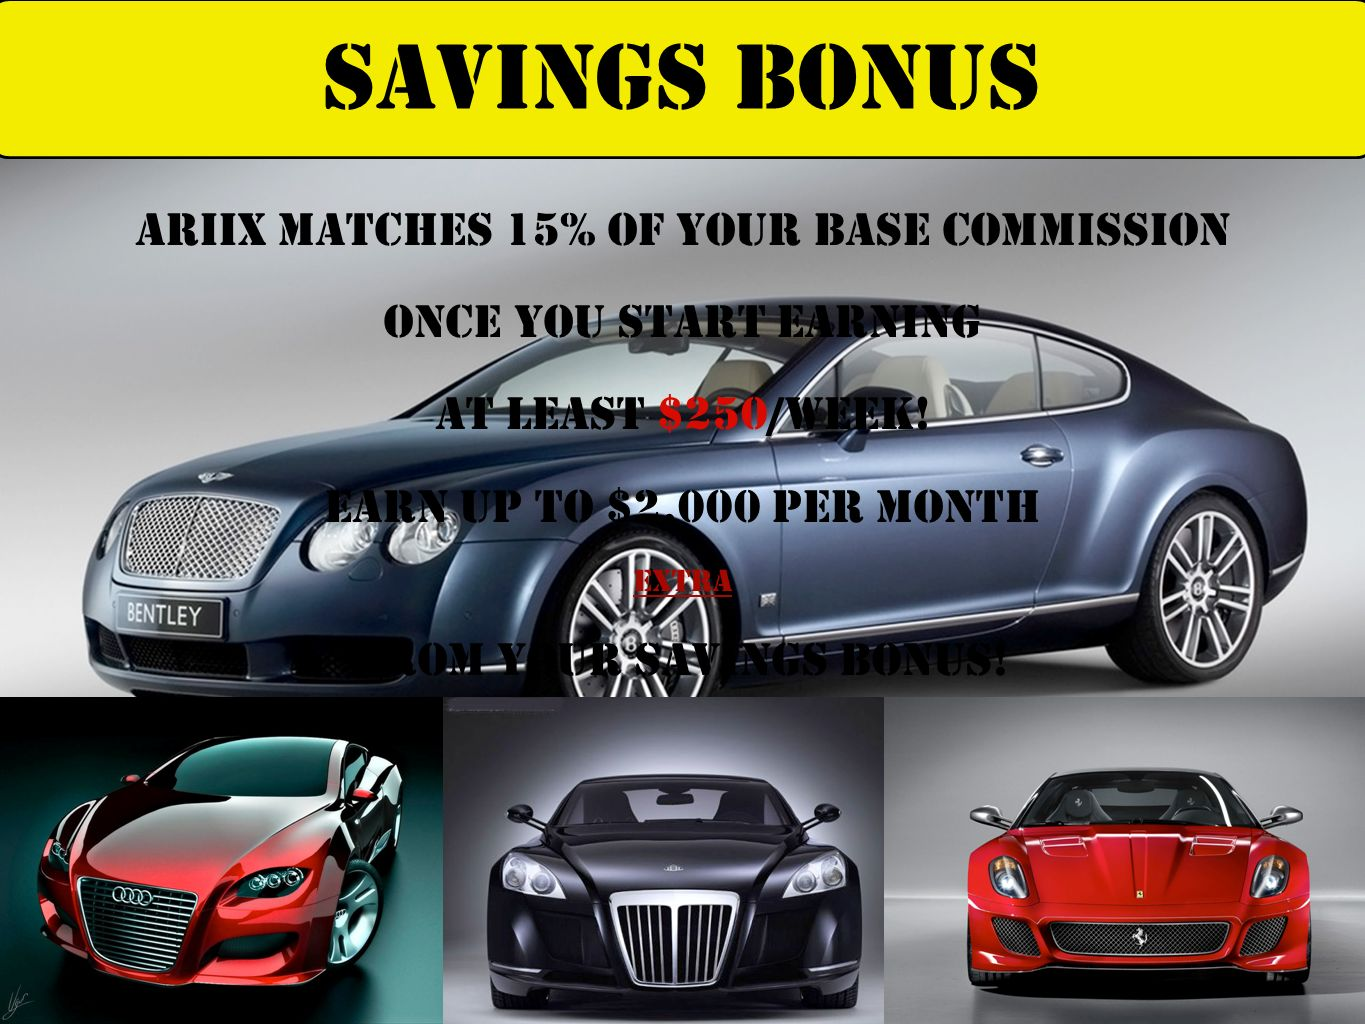 ARIIX Matches 15% OF YOUR BASE COMMISSION ONCE YOU START EARNING AT LEAST $250/WEEK! Earn up to $2,000 per month EXTRA FROM Your savings Bonus! Saving